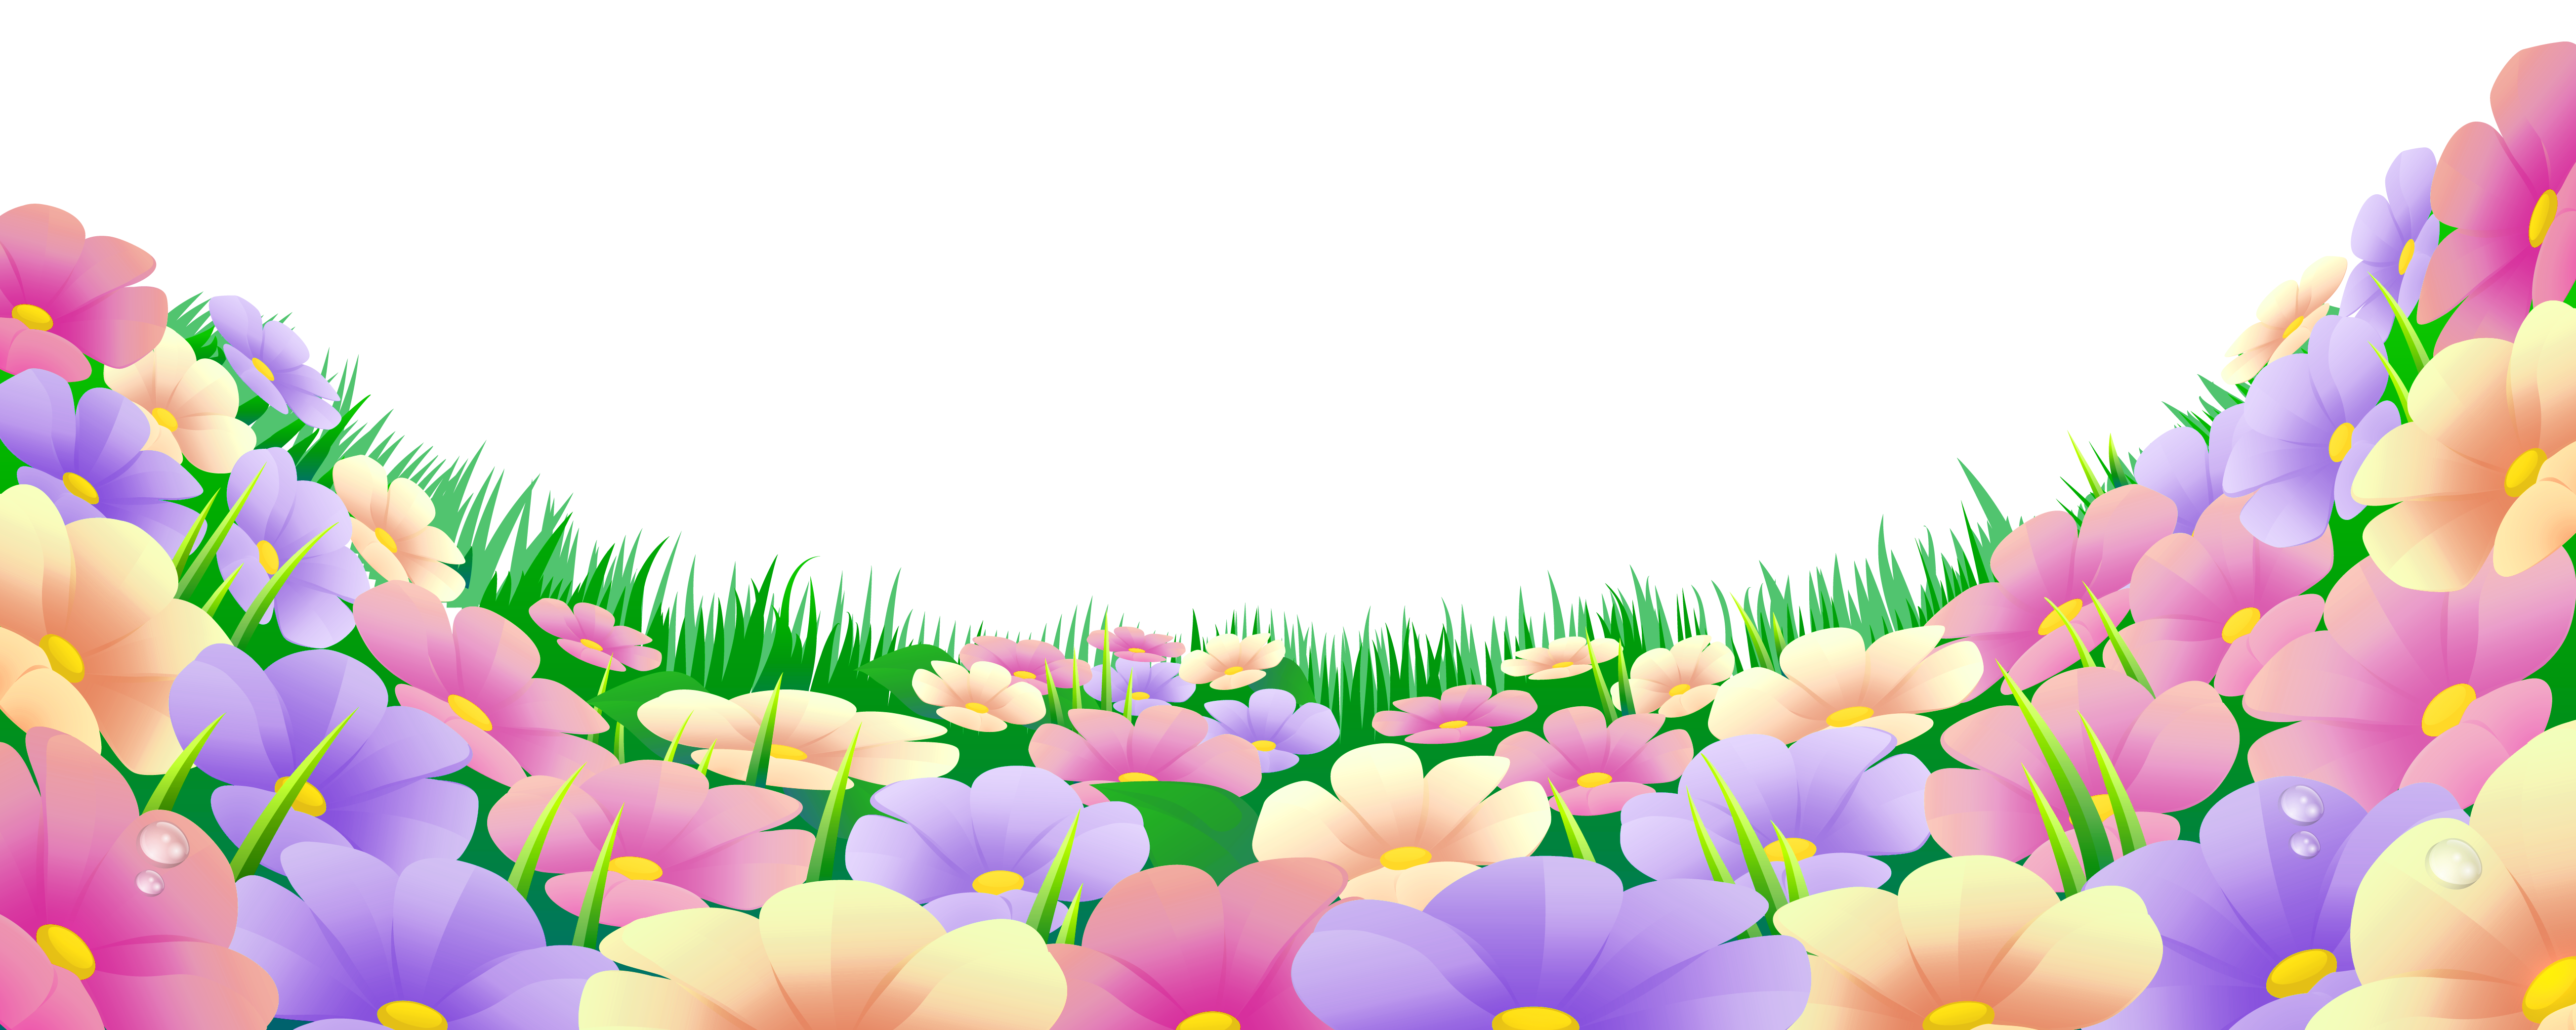 Grass with beautiful flowers png clipart download pinterest grass with beautiful flowers png clipart izmirmasajfo